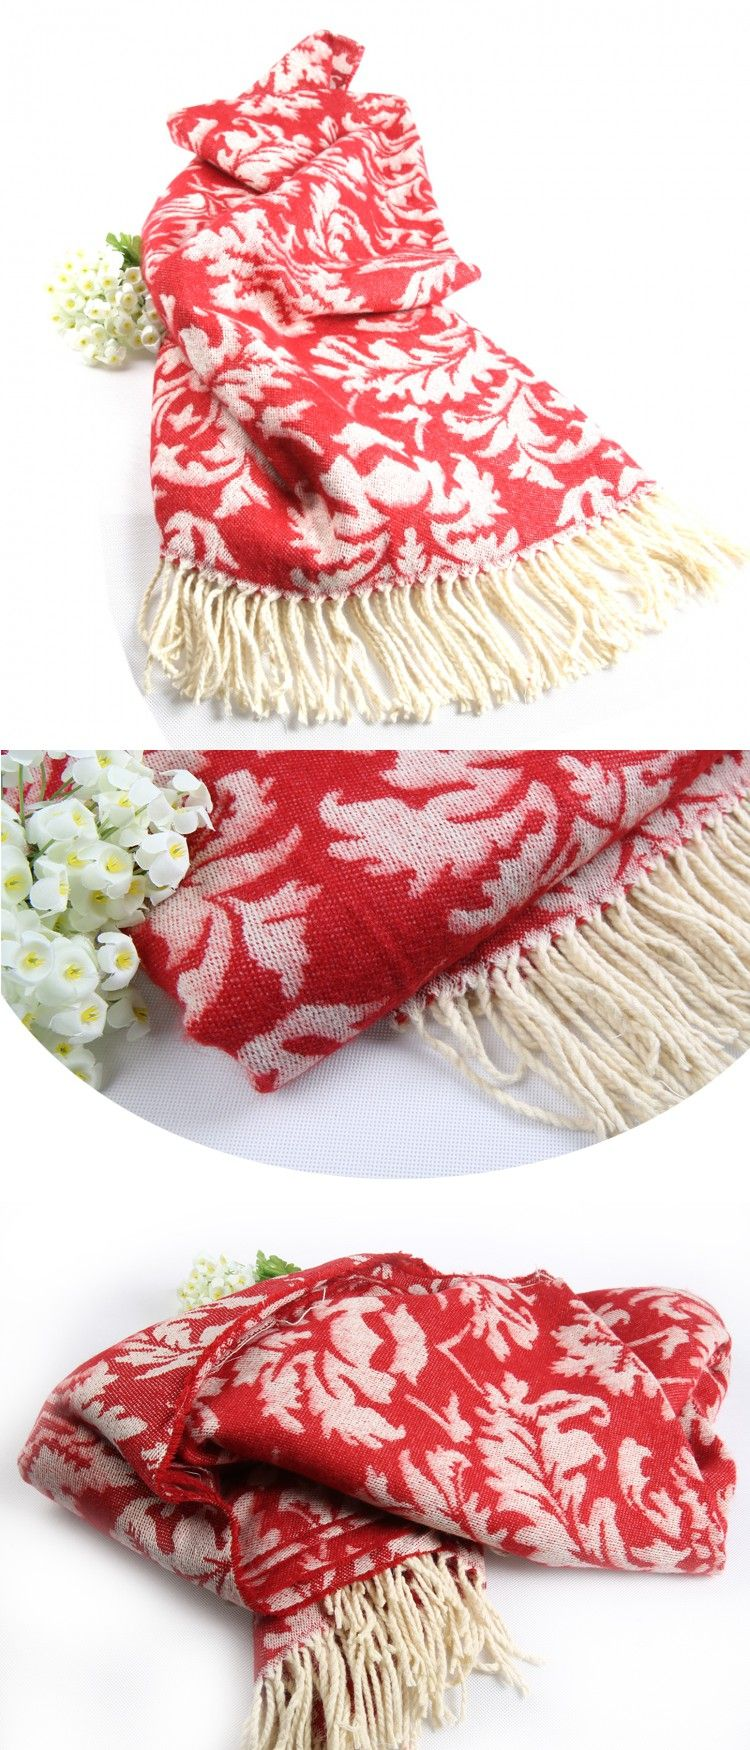 Fashion decorative flower printing cape blanket decoration carpet130x170cm  knitted blanket $20.8